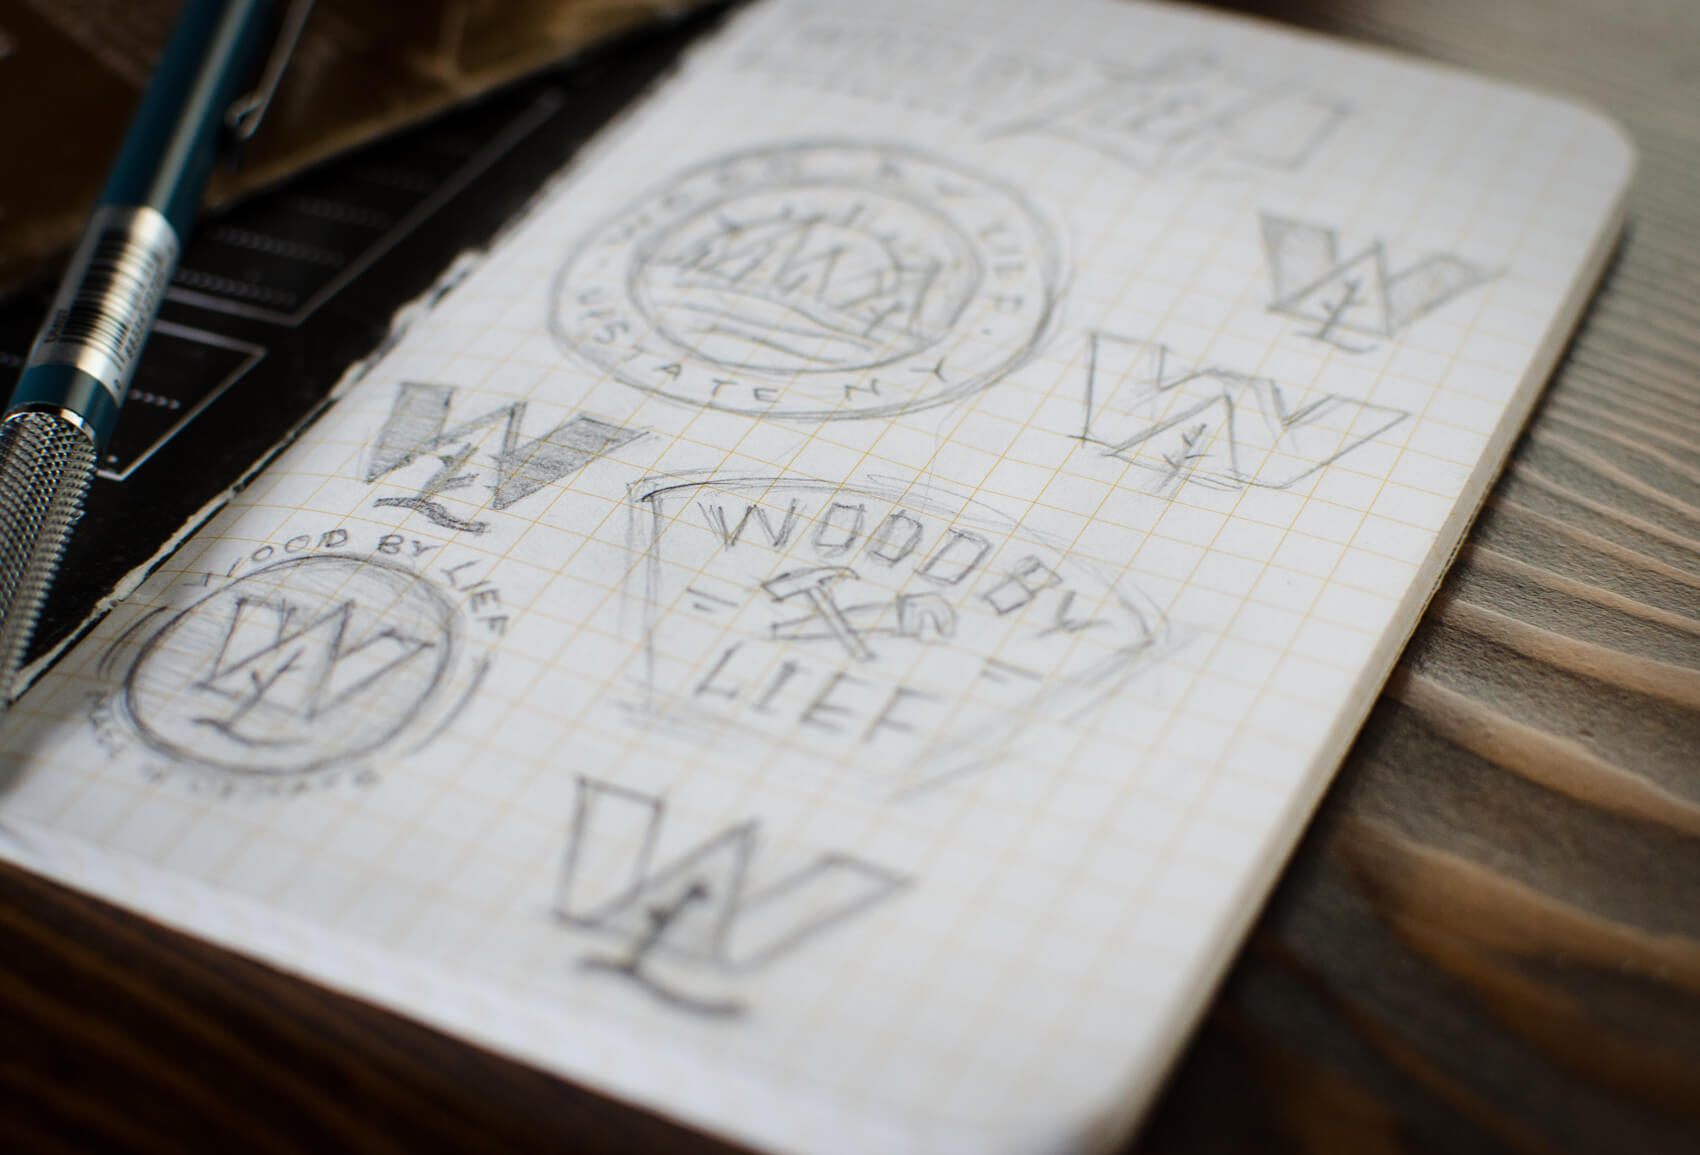 Wood By Lief Alternate Logo Sketching